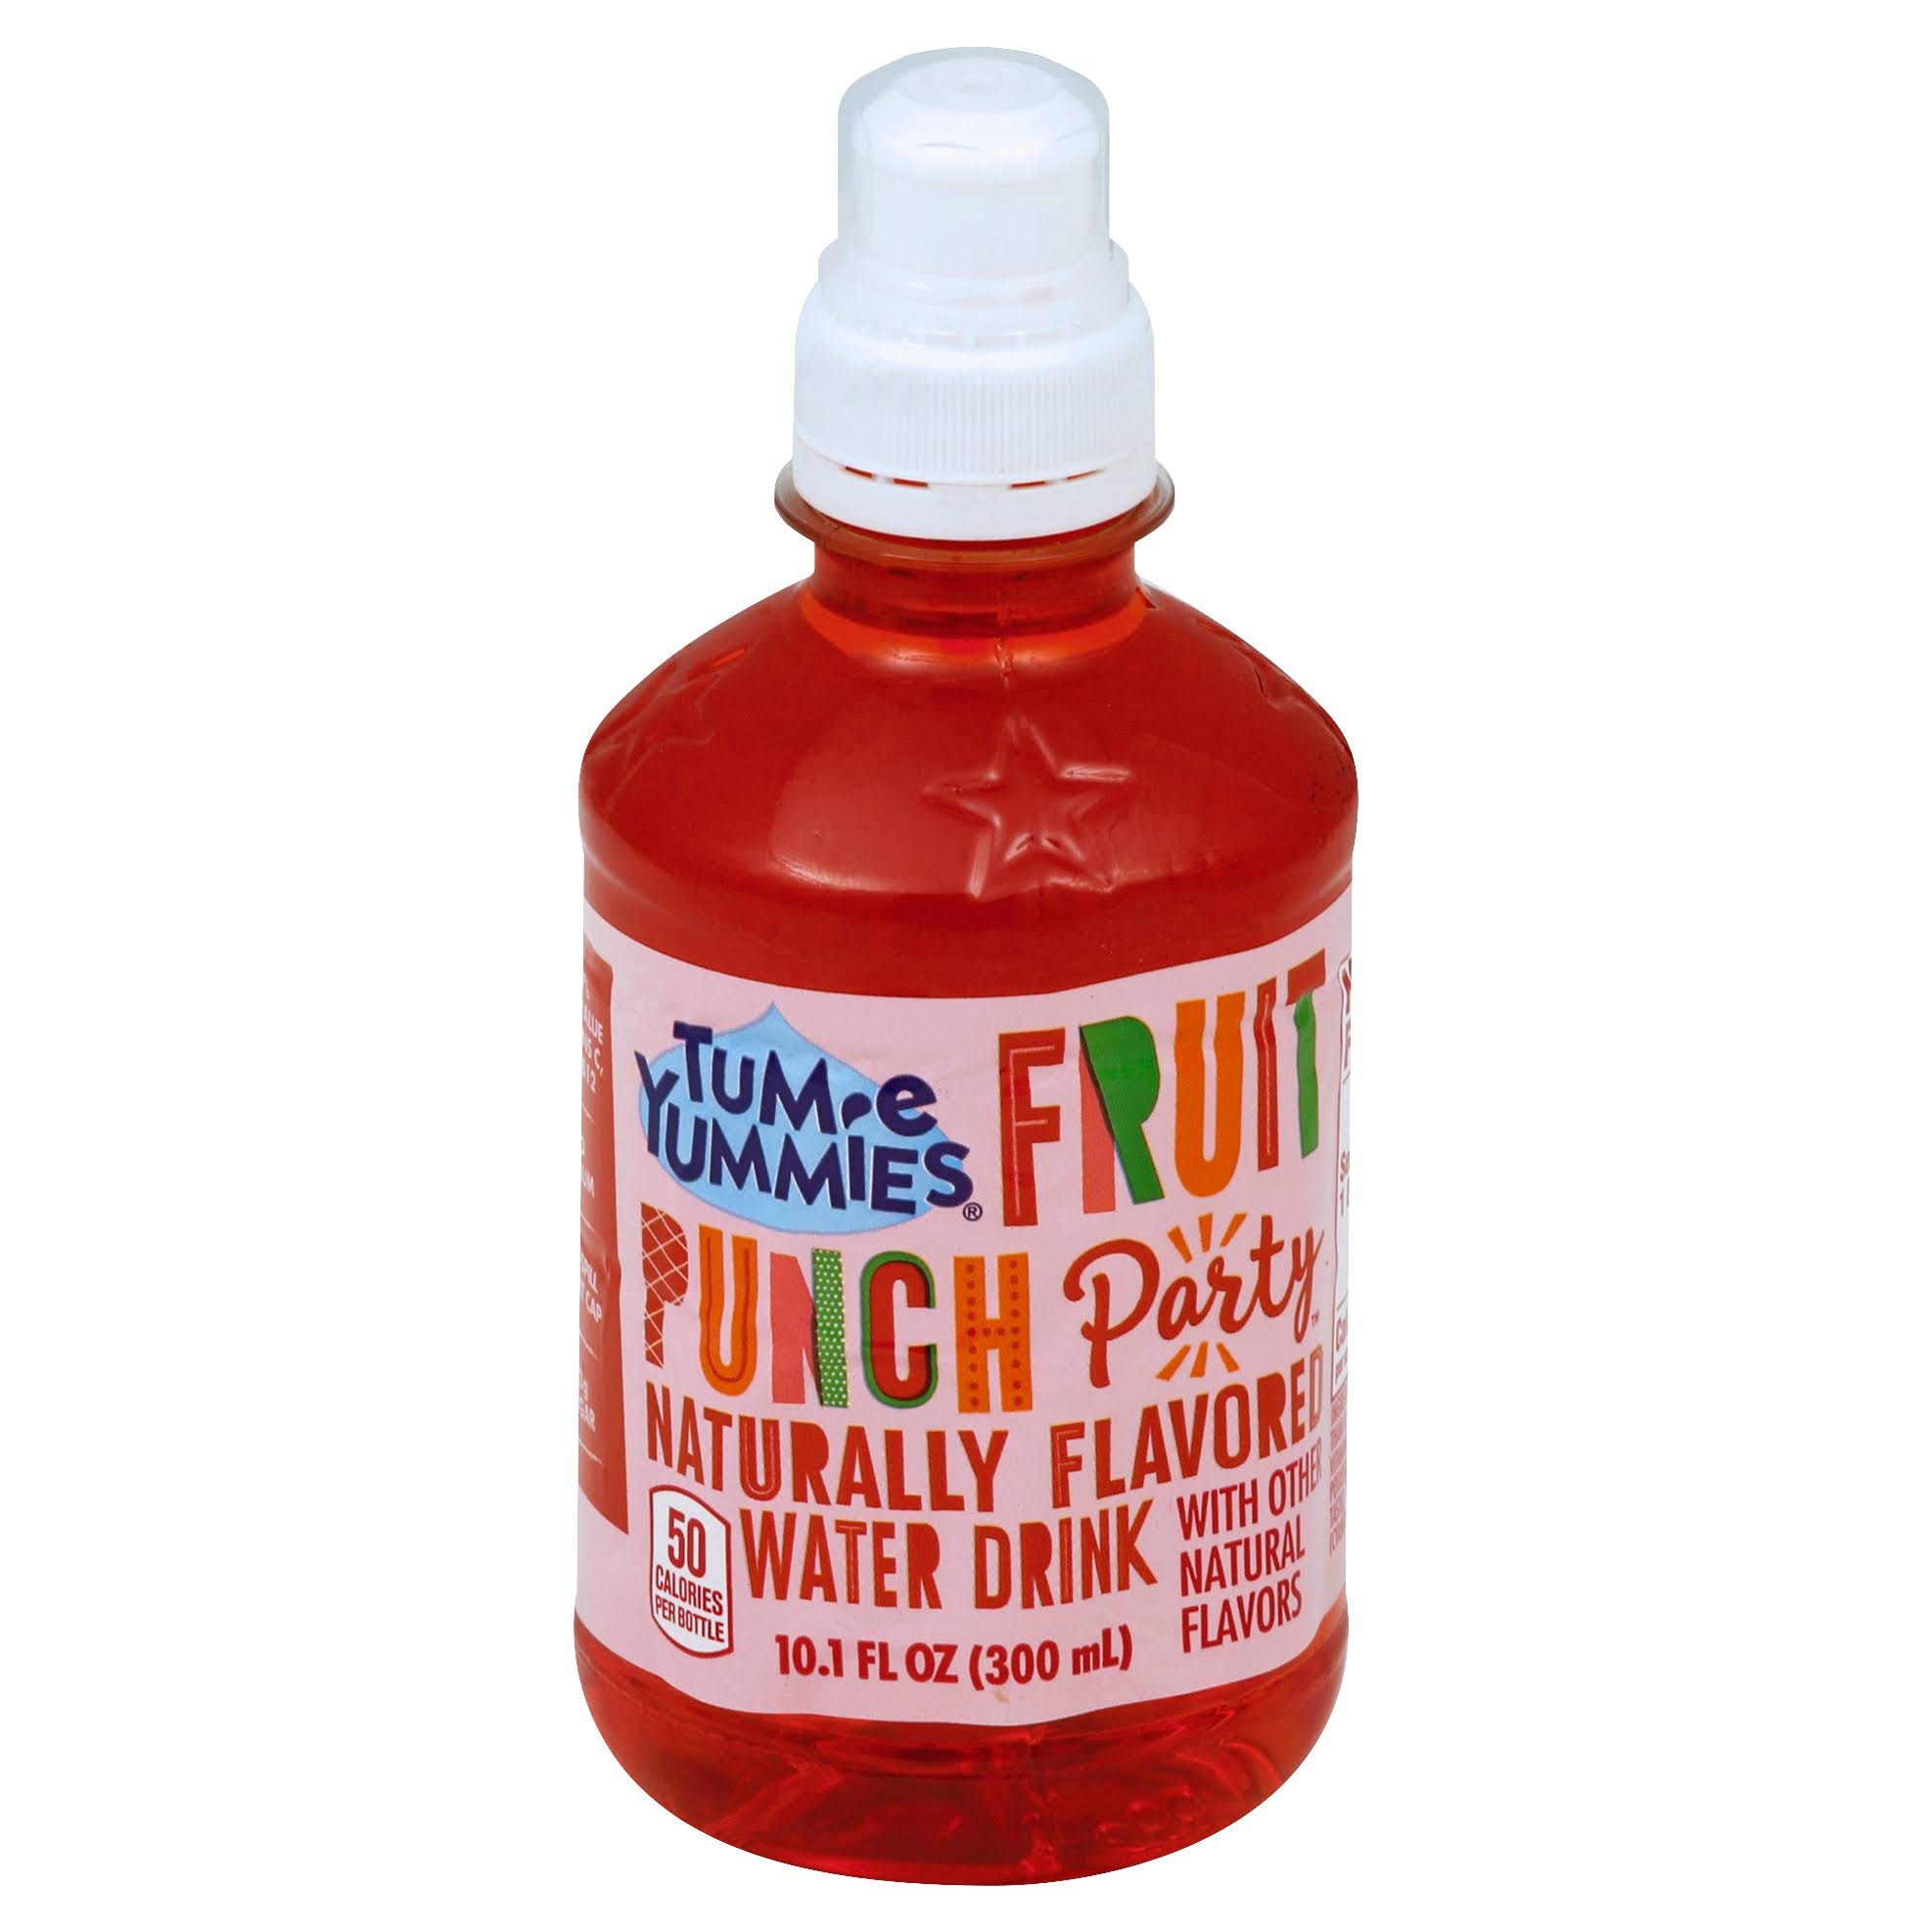 Tum E Yummies Party Water Drink, Fruit Punch - 10.1 fl oz